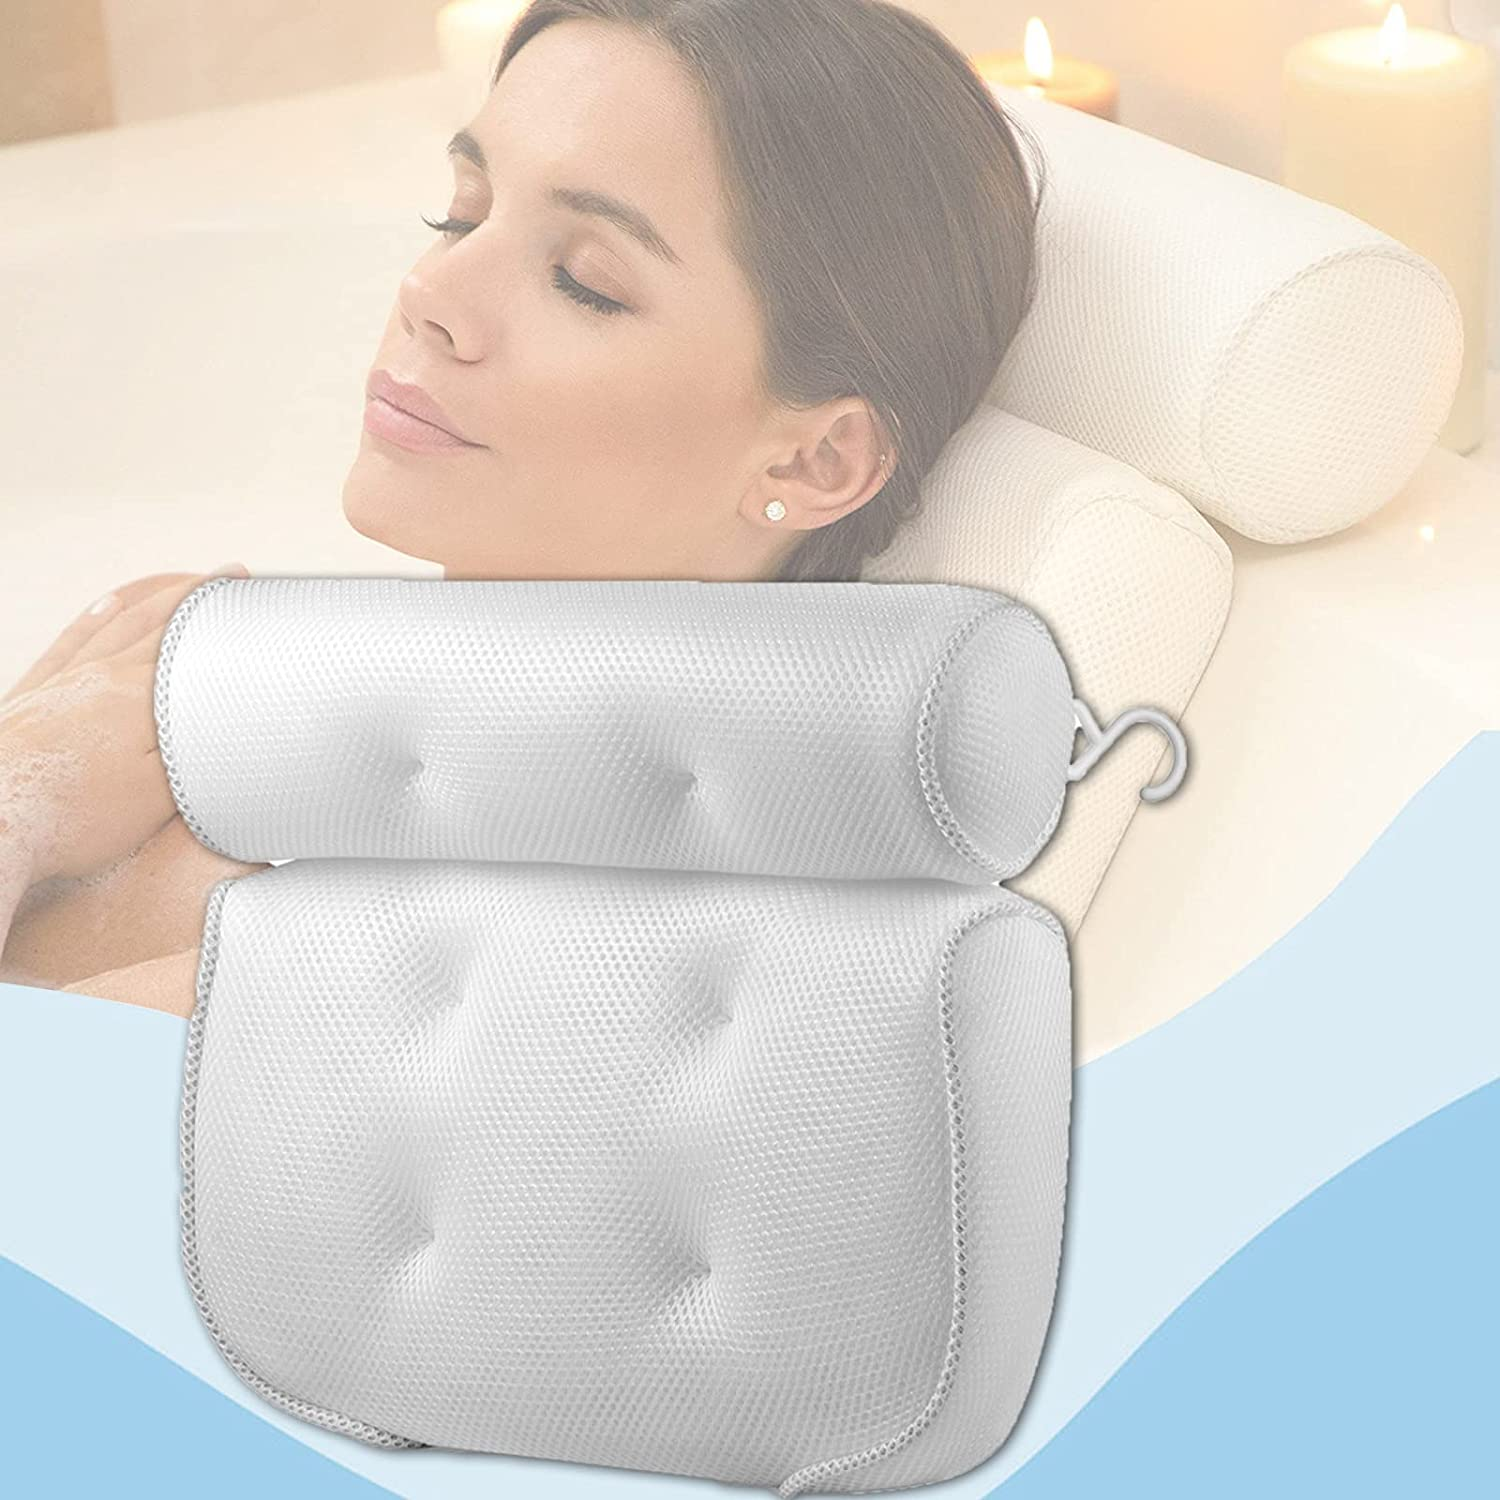 HeTaiDa Bath Quantity limited Pillow for Tub Neck and Mesh Support High quality new Air Back Sp 3D